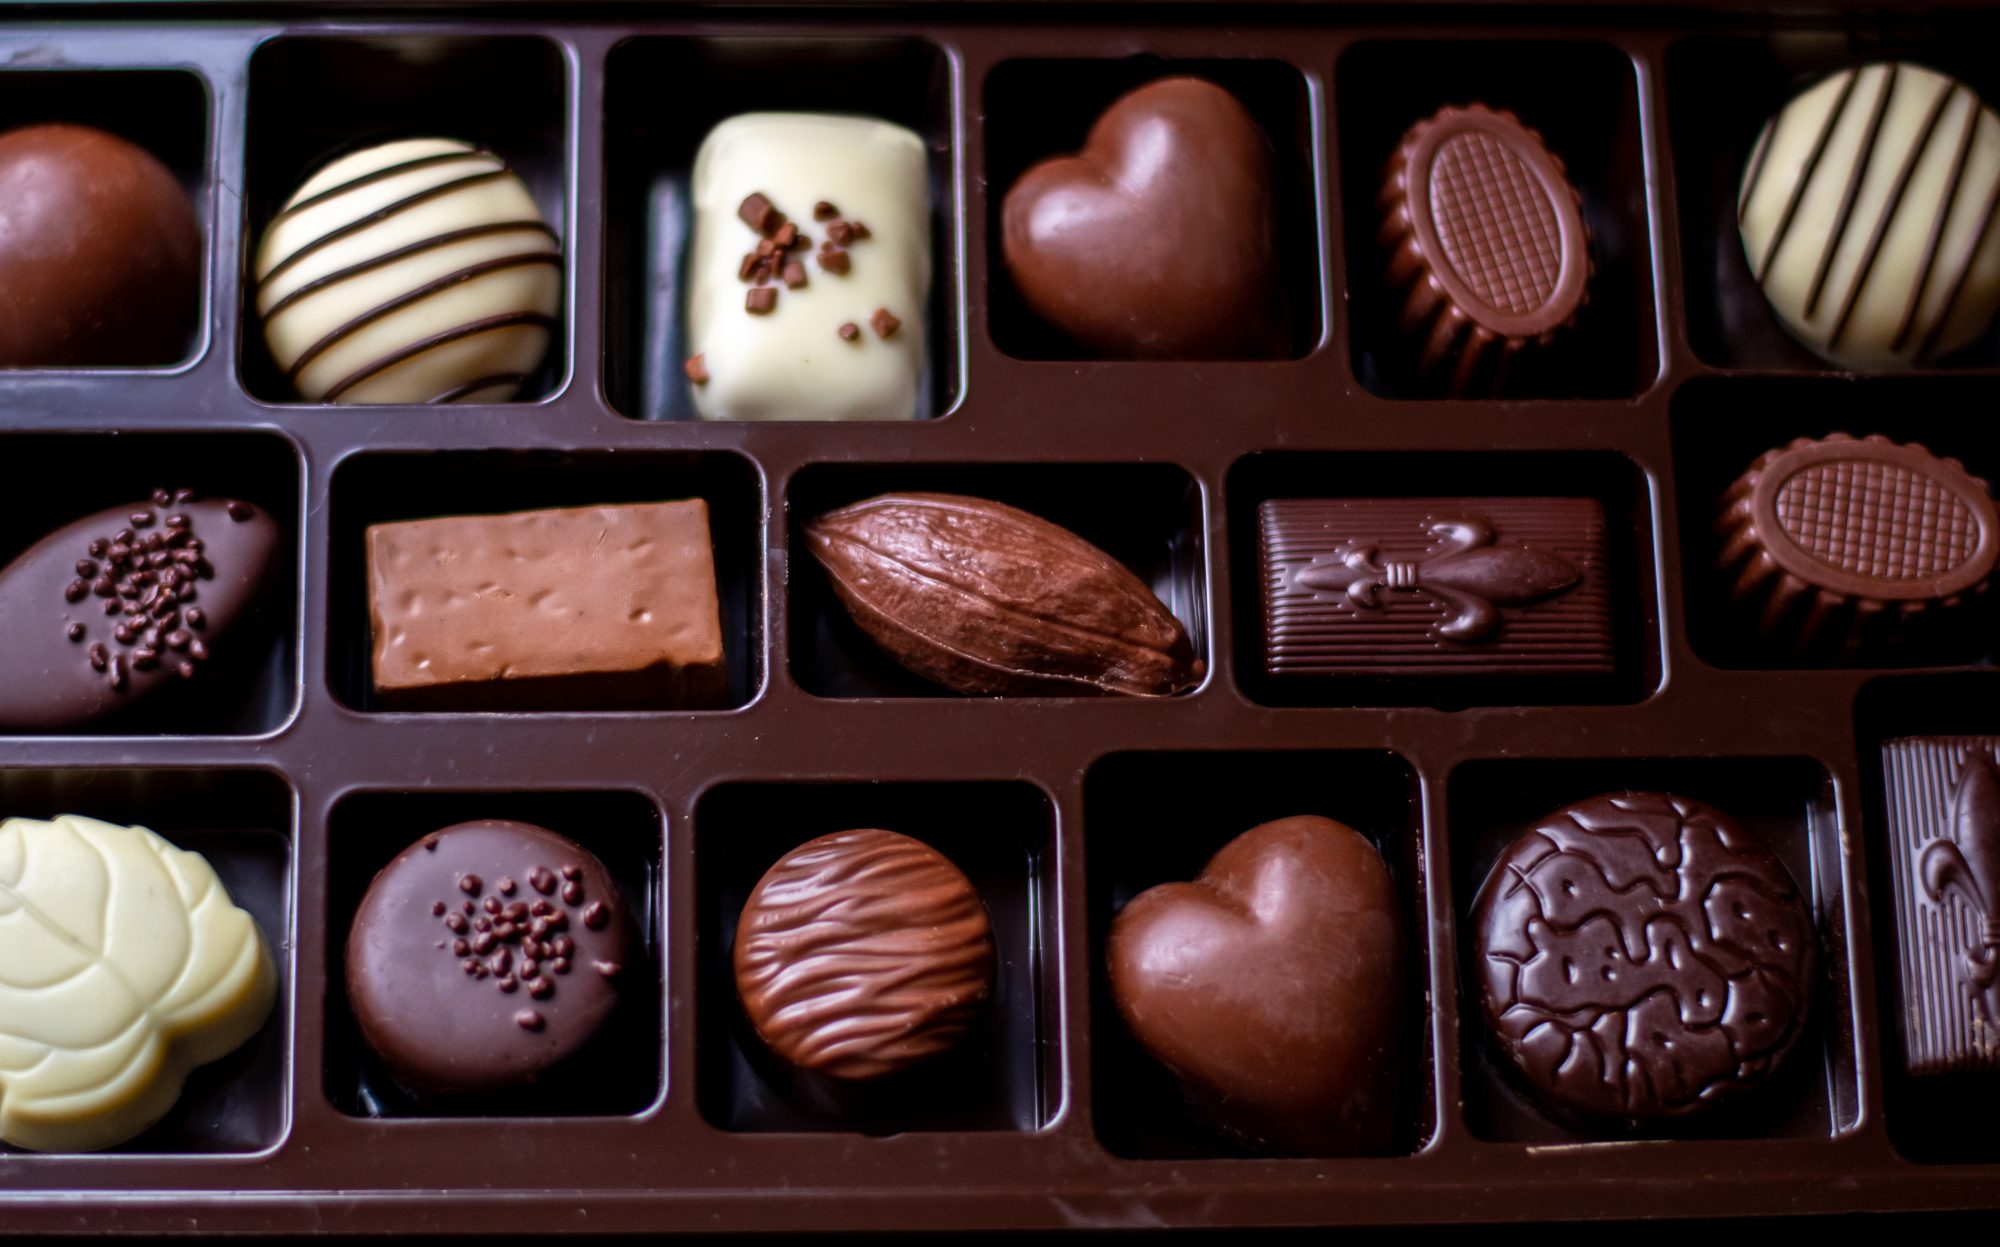 Chocolate box guide - what's inside a box of chocolates and how to tell